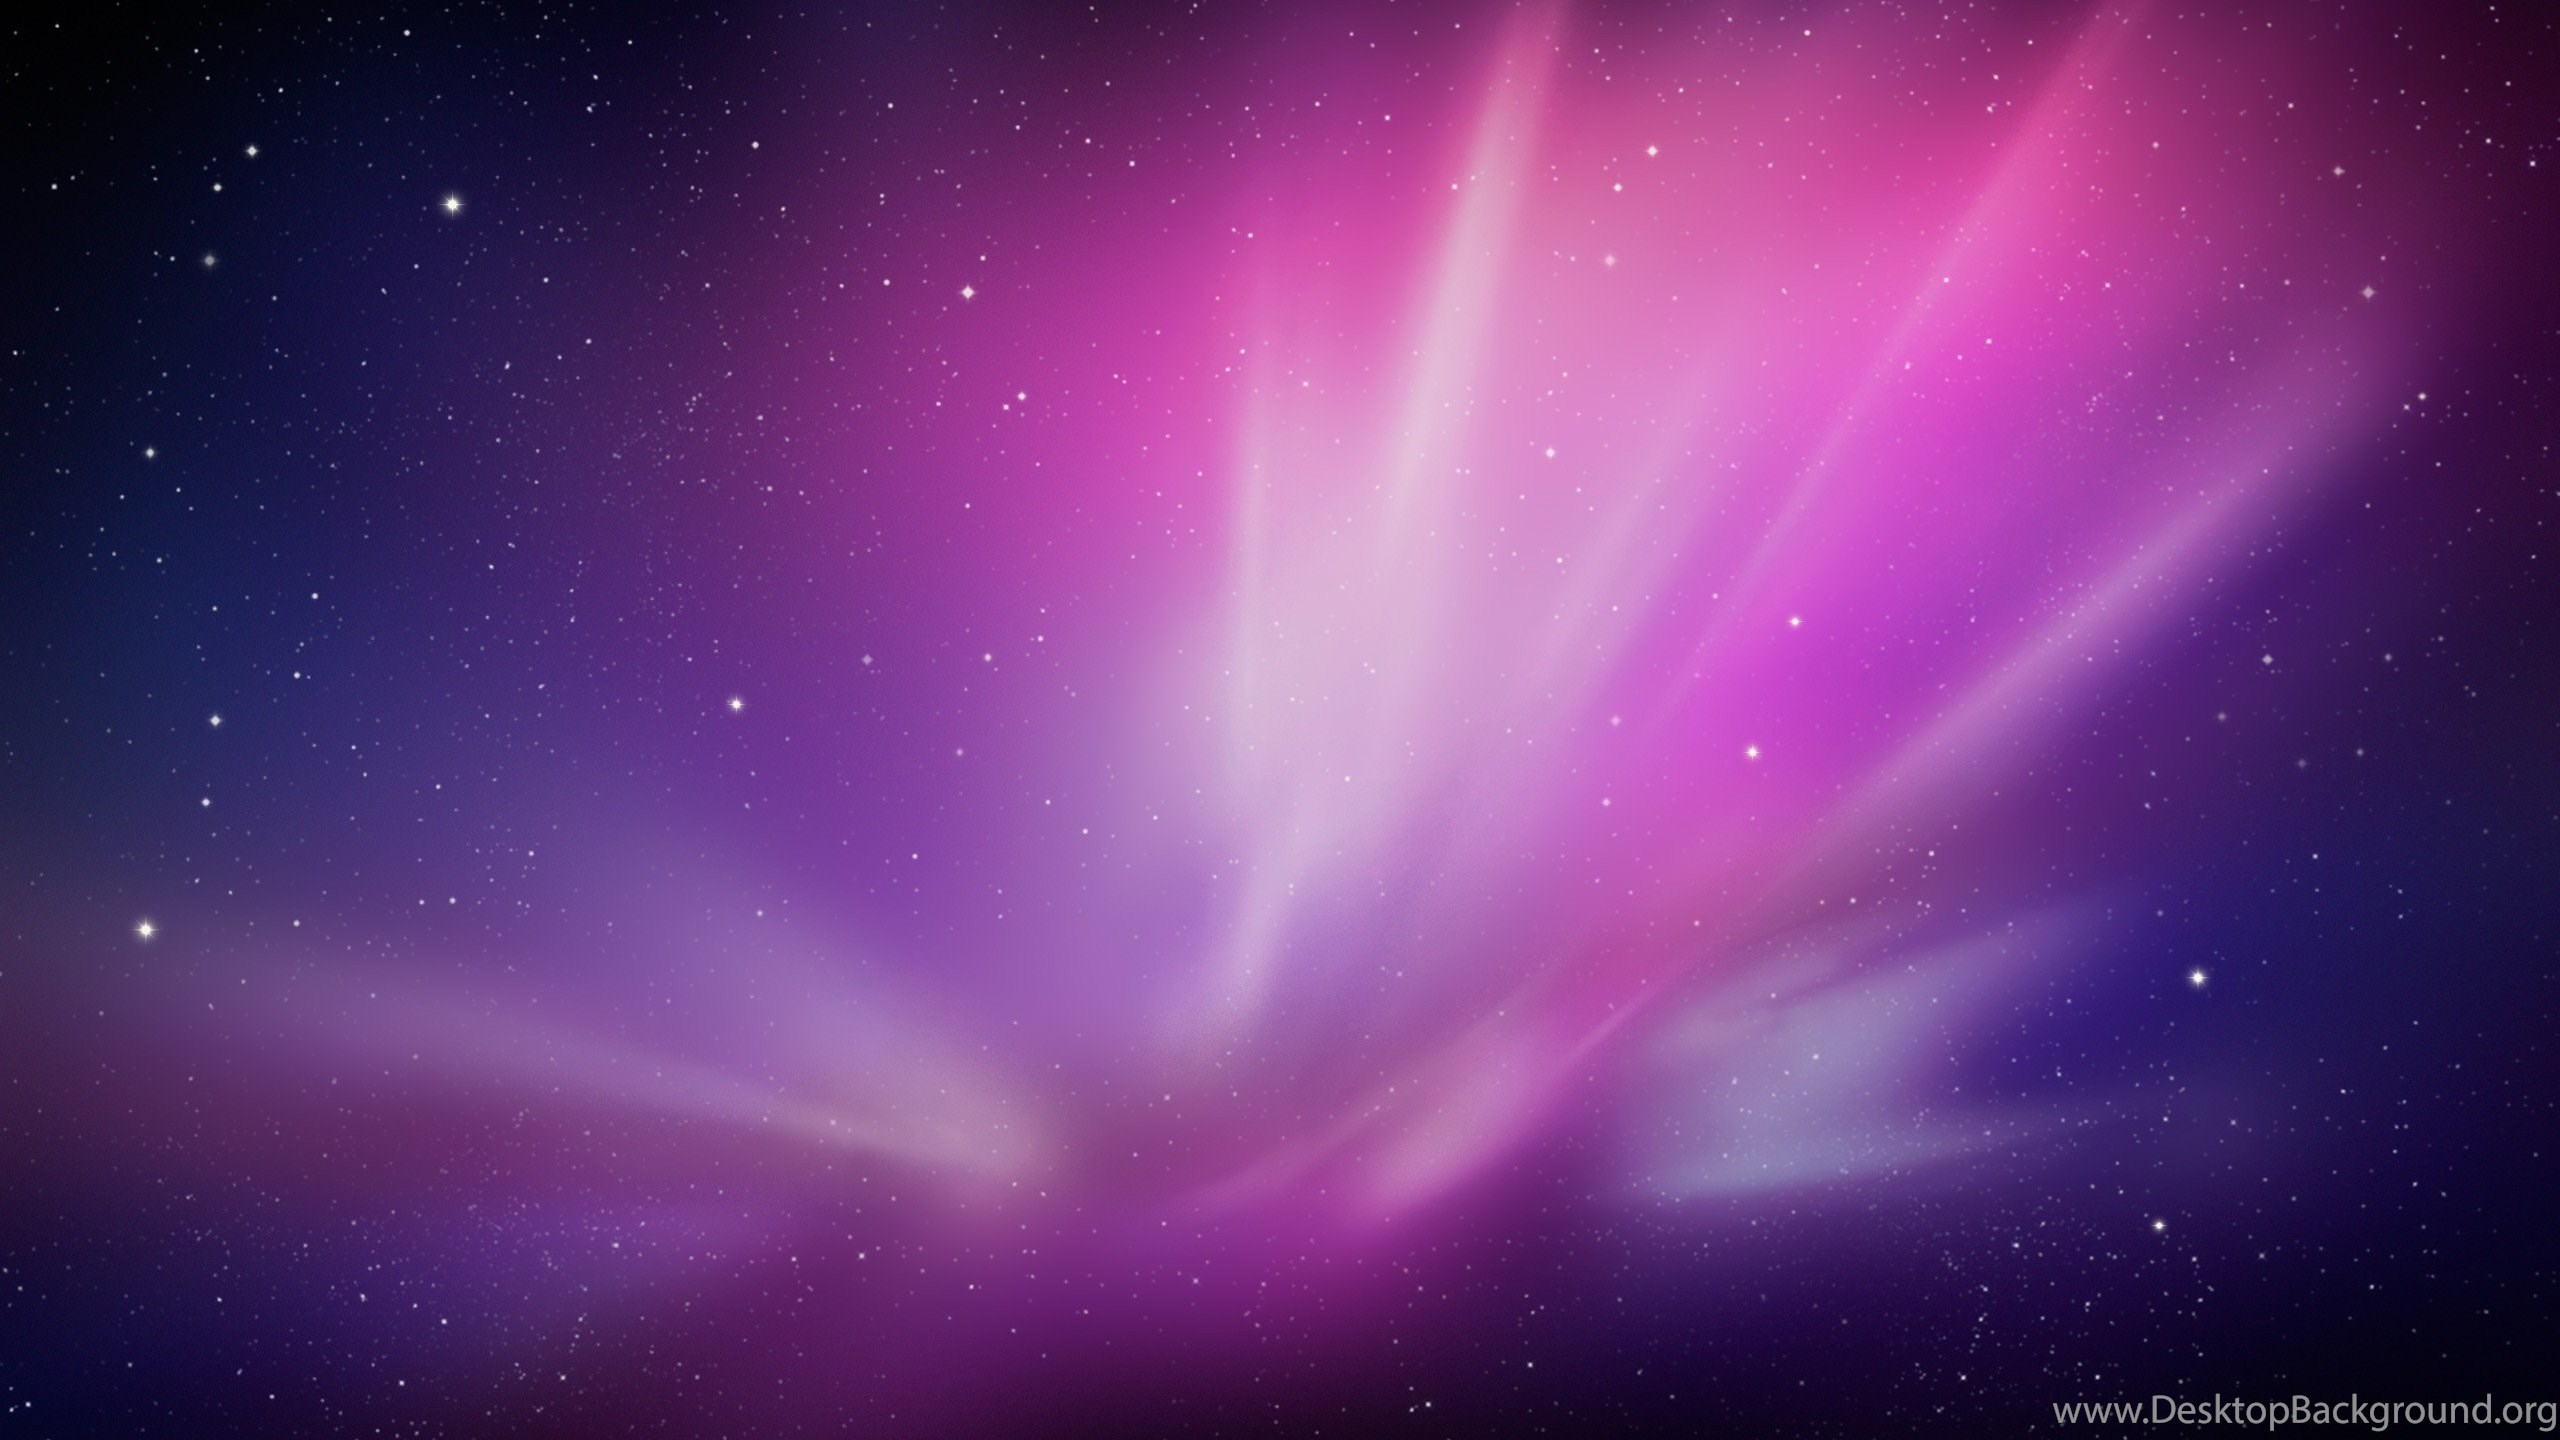 purple galaxy wallpapers from the osx mac 2560x1440 wallpapers